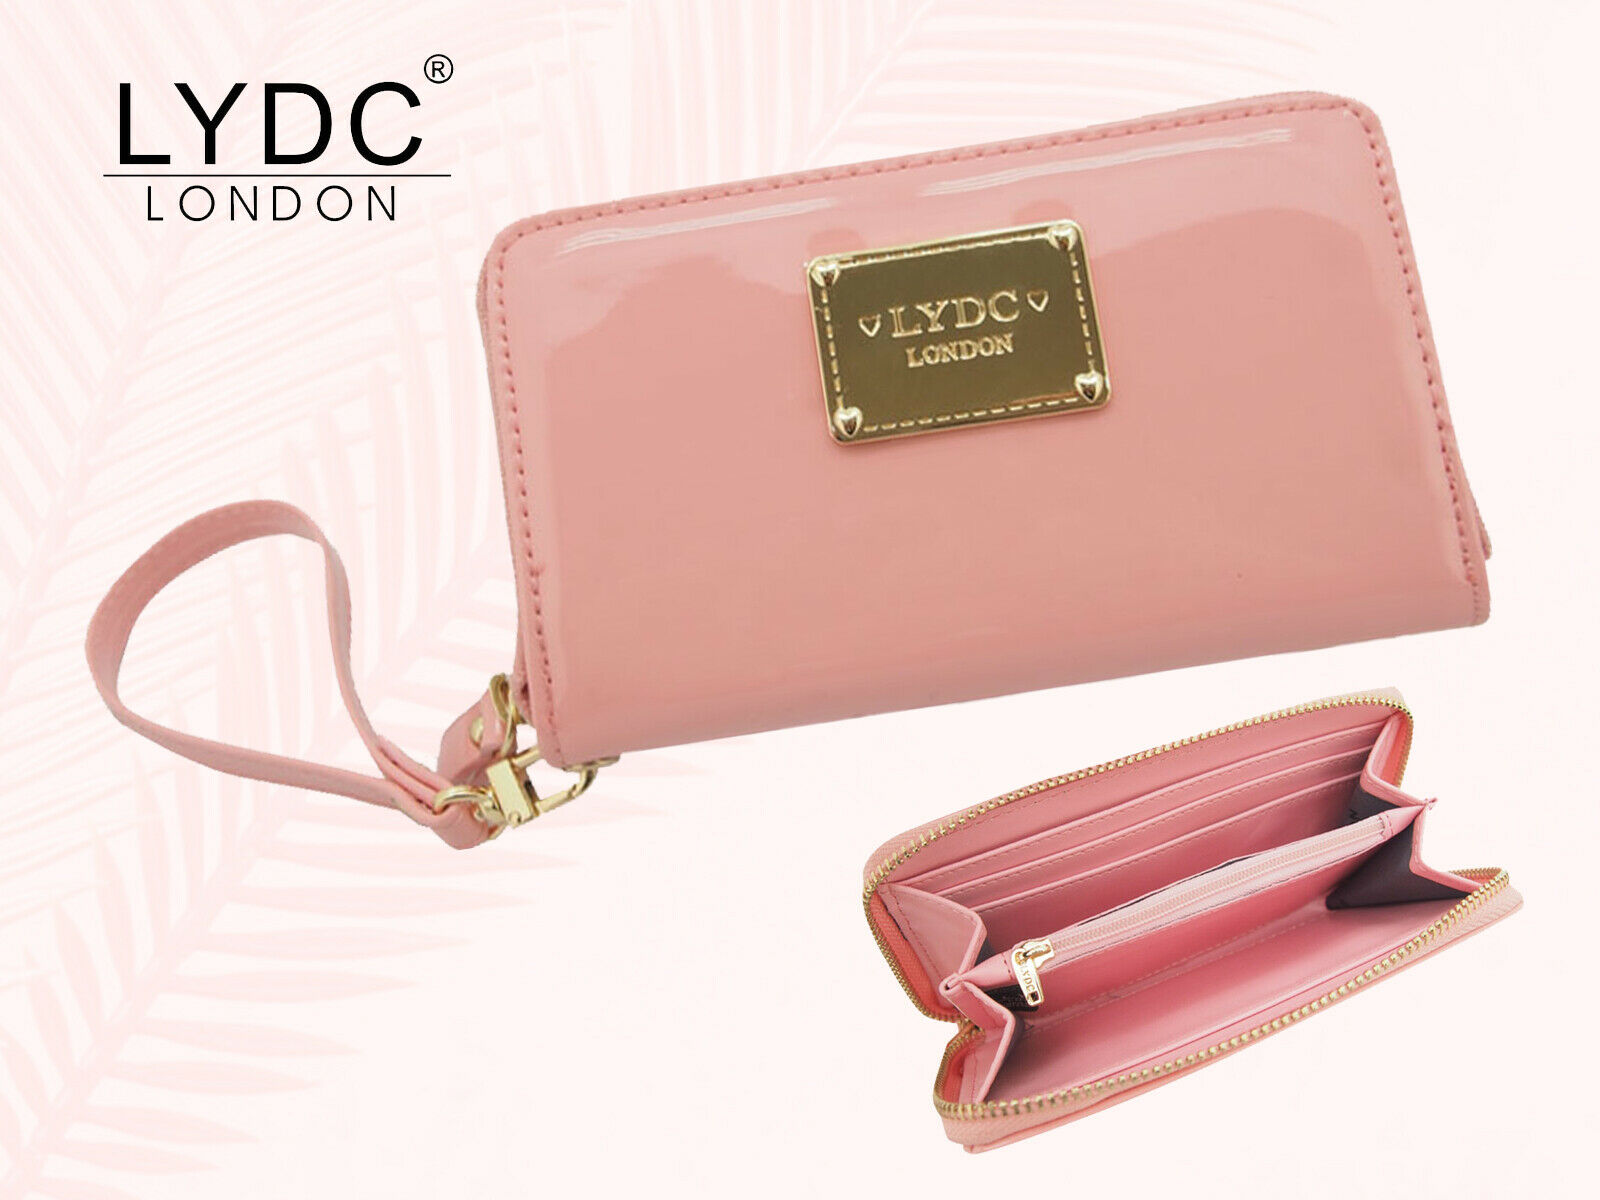 LYDC London Glossy Pink Purse With Wrist Strap Womens Zipped Coin Notes Wallet